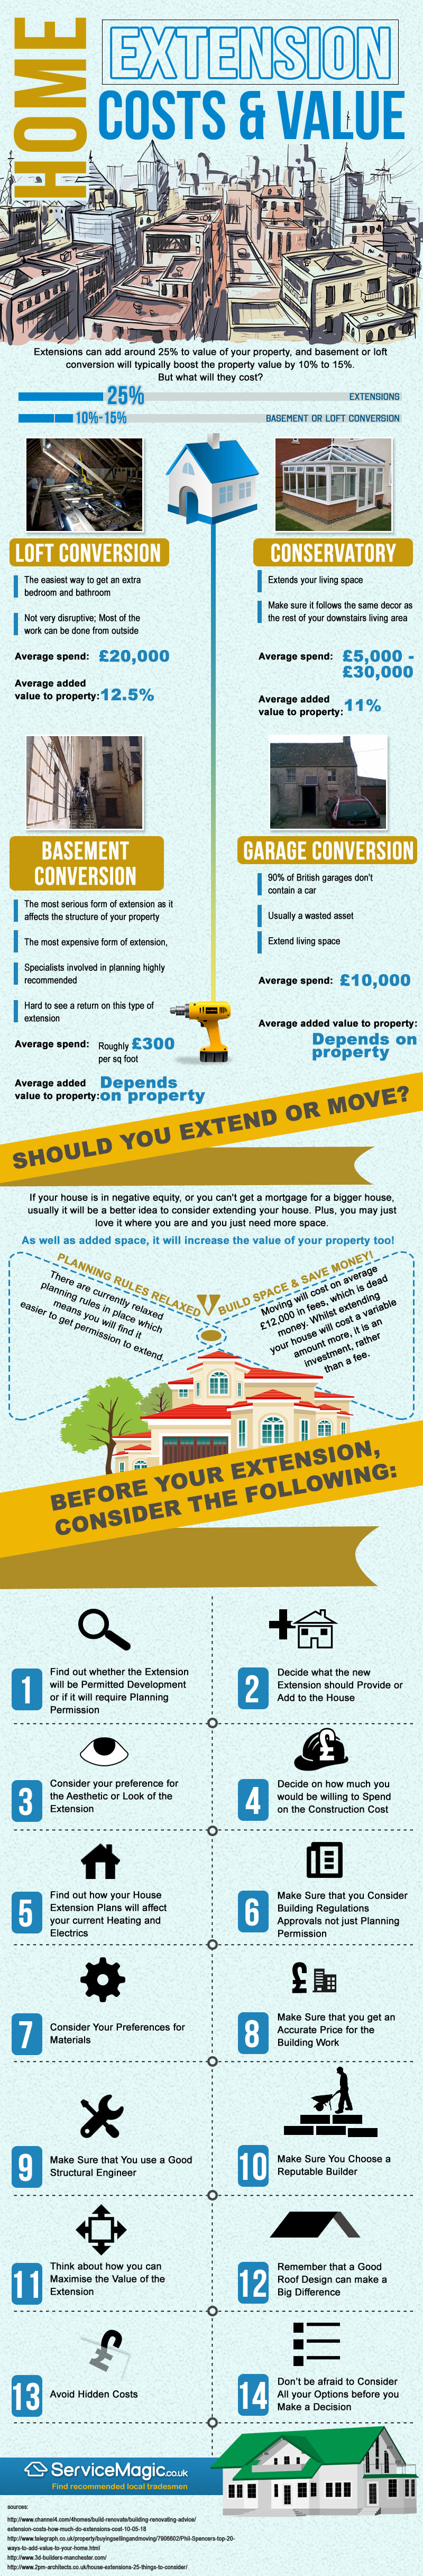 Home Extension Costs & Value